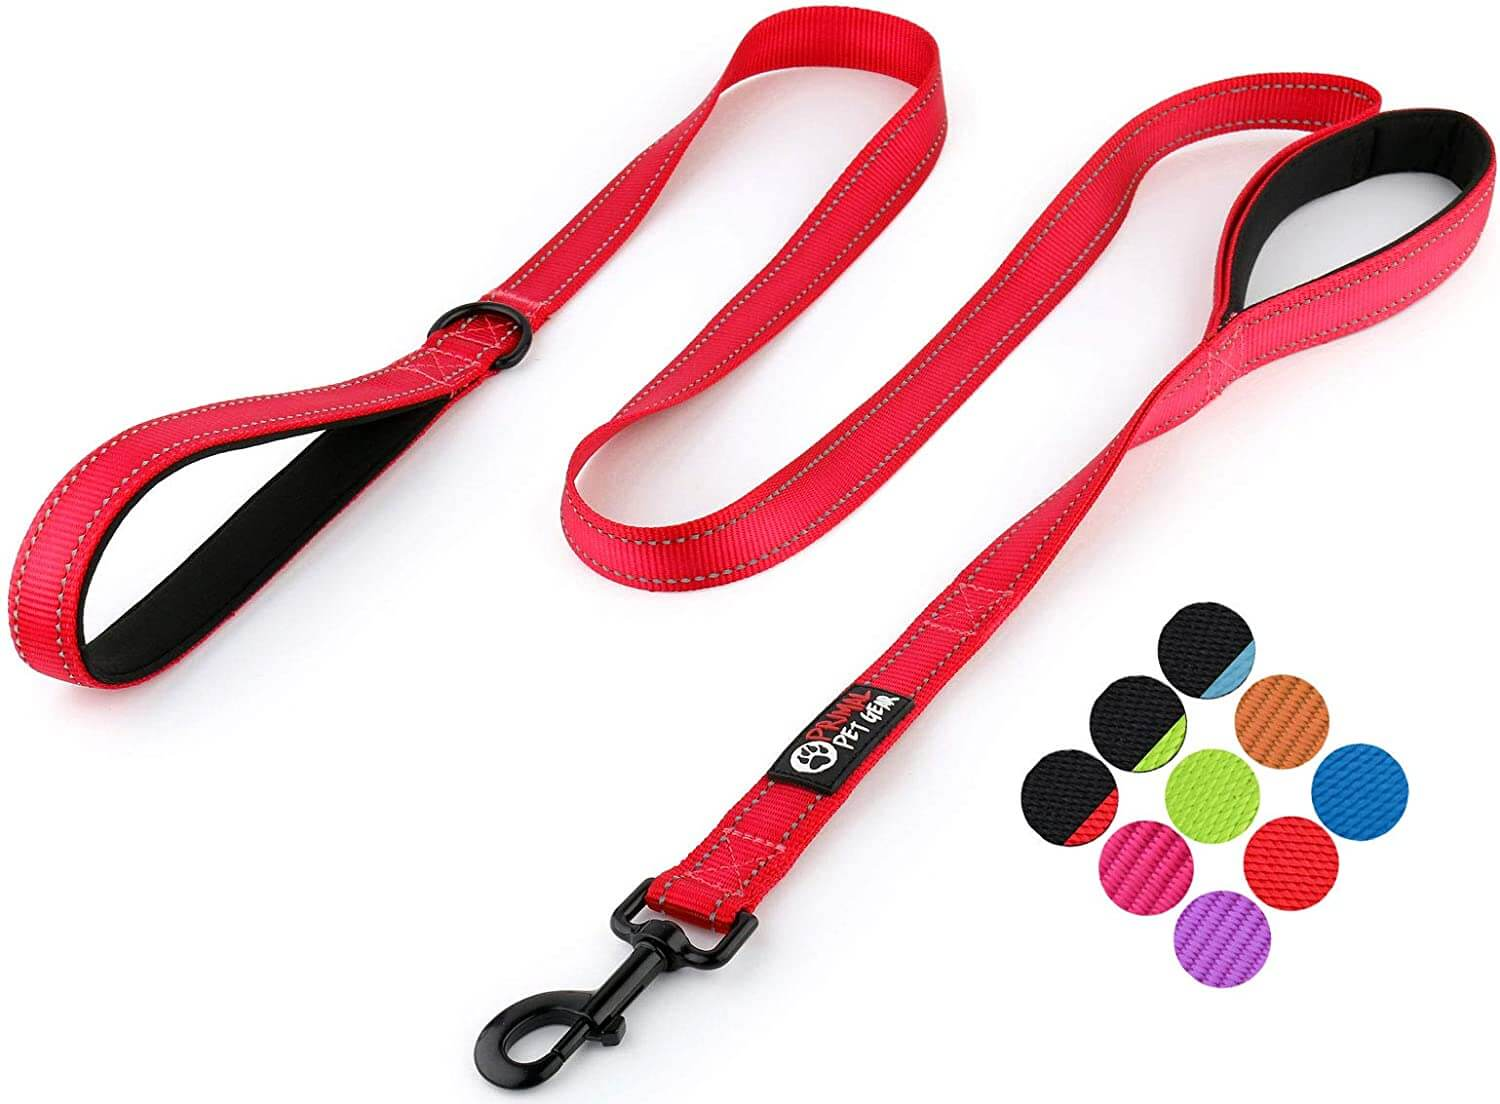 dog leash - long with 2 handles